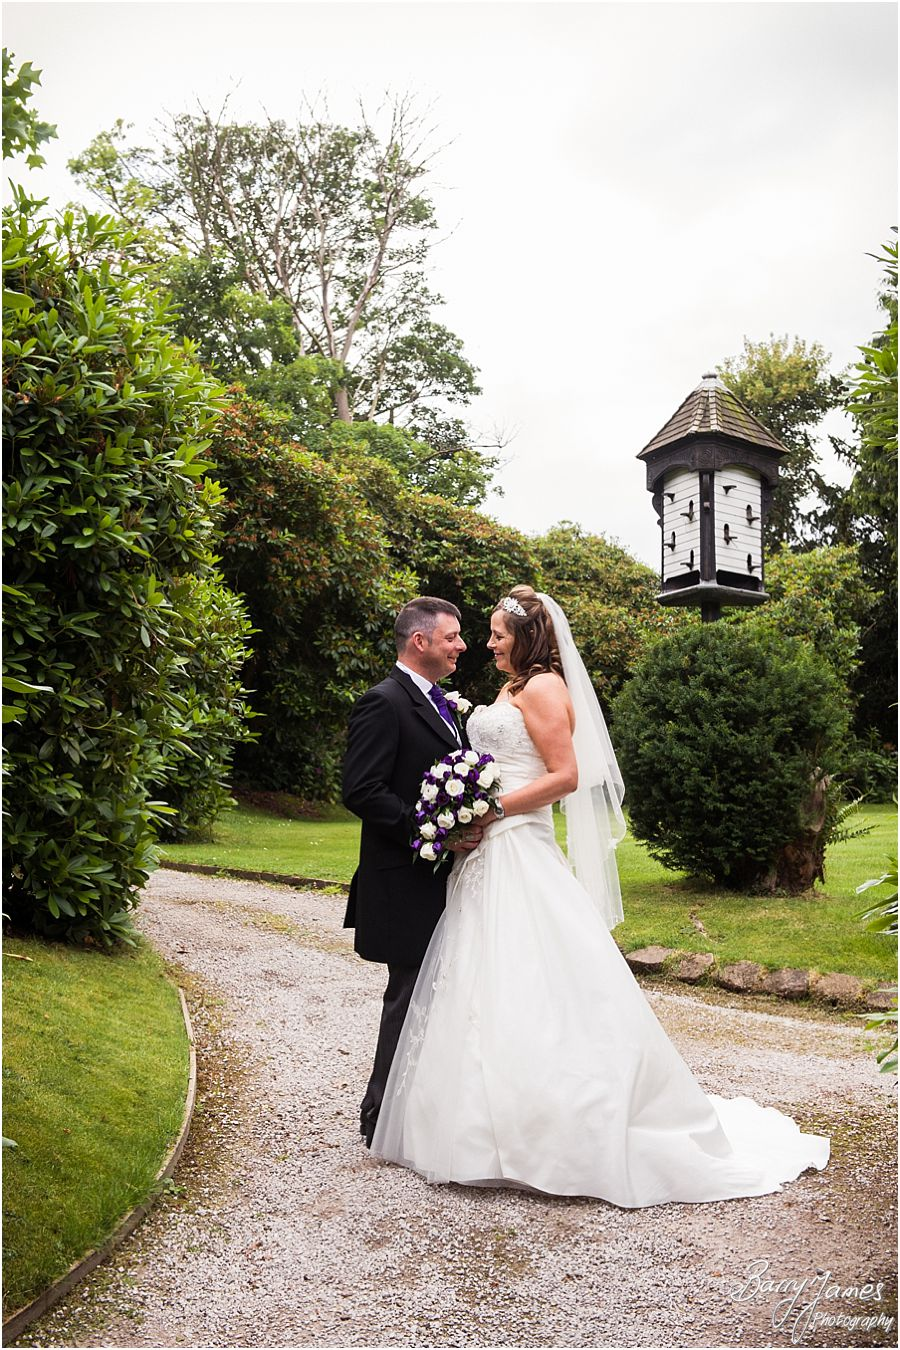 Storybook wedding photography that captures the wonderful wedding at Hawkesyard Estate in Rugeley by Award Winning Wedding Photographer Barry James